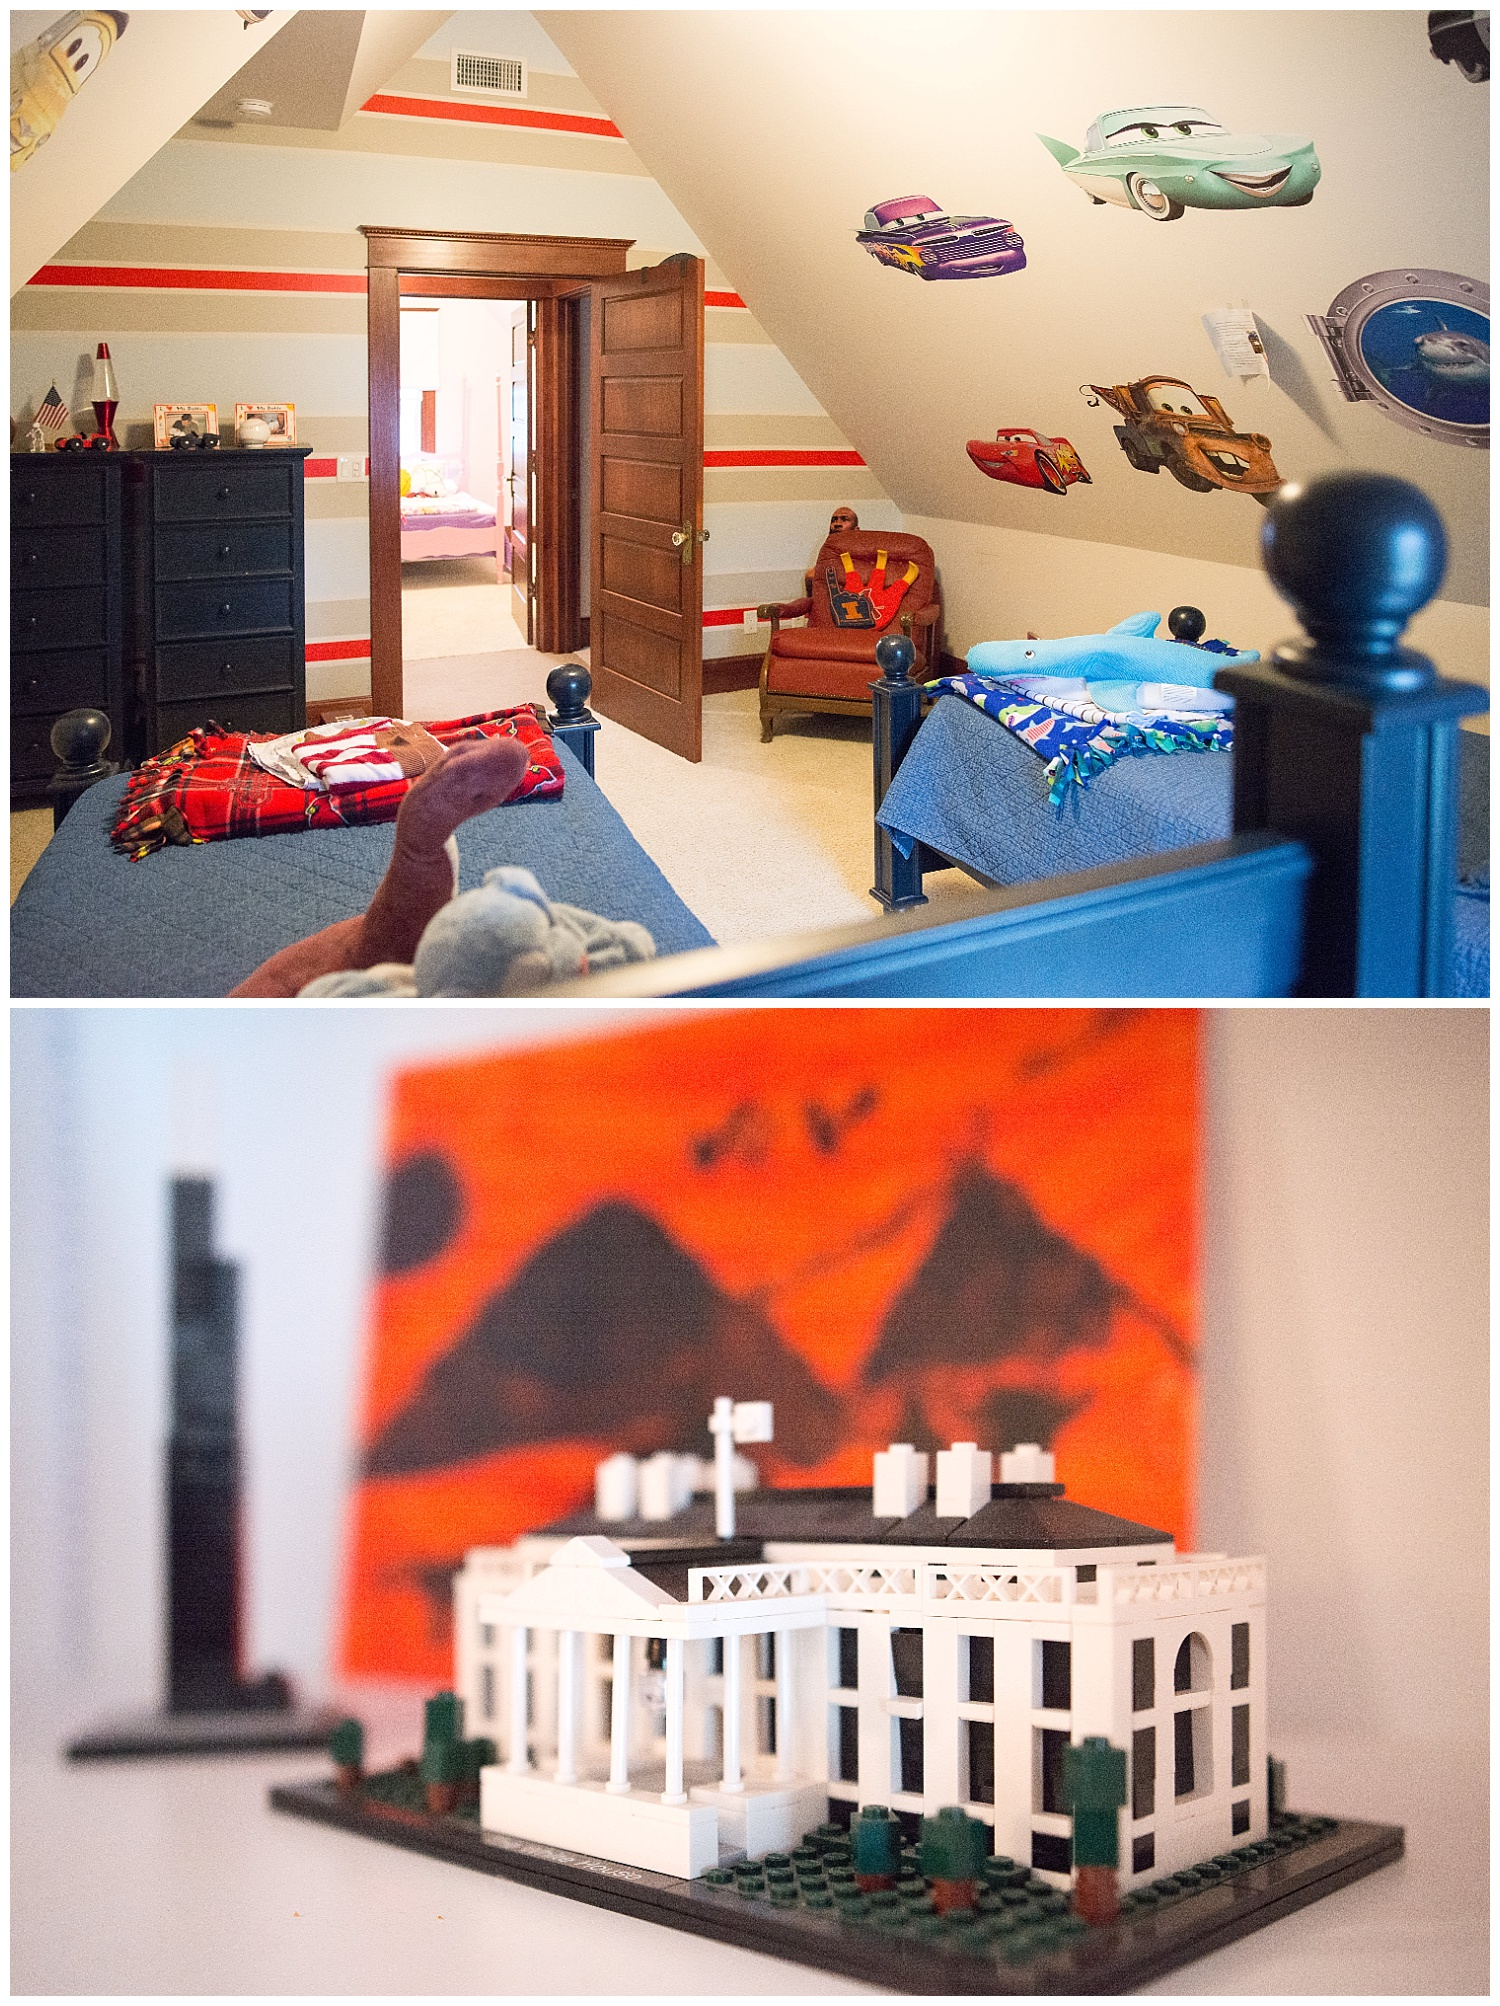 The Probst kids - Joseph (Joey) (8), Mark (the Shark) (6) and Gwyneth (Gwen) (5) have rooms in the attic space that was separated into bedrooms. Joey and Mark share a typical boys' room complete with stuffed animals, Cars and sharks wall decals and a cute little vintage chair in the corner. Joey's little Lego Architecture sculptures decorate the kids' upstairs space.